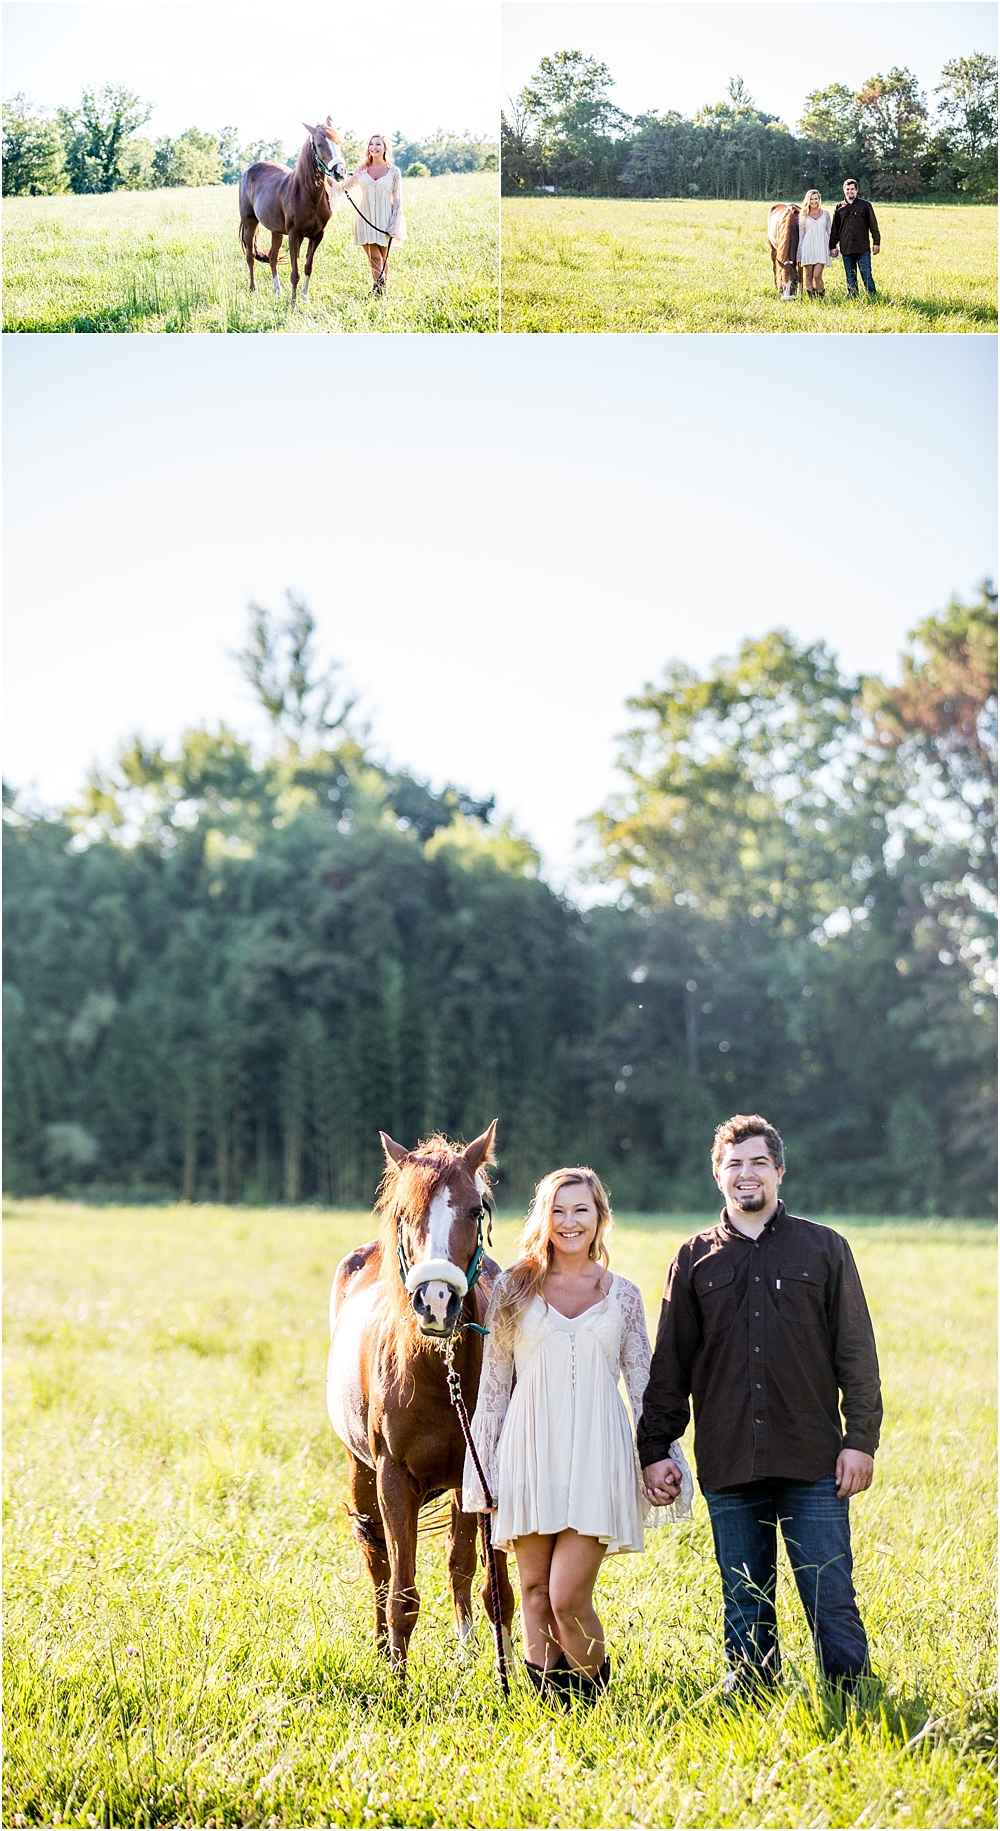 Sydney James Engagement Session with Horses Living Radiant Photography photos_0013.jpg